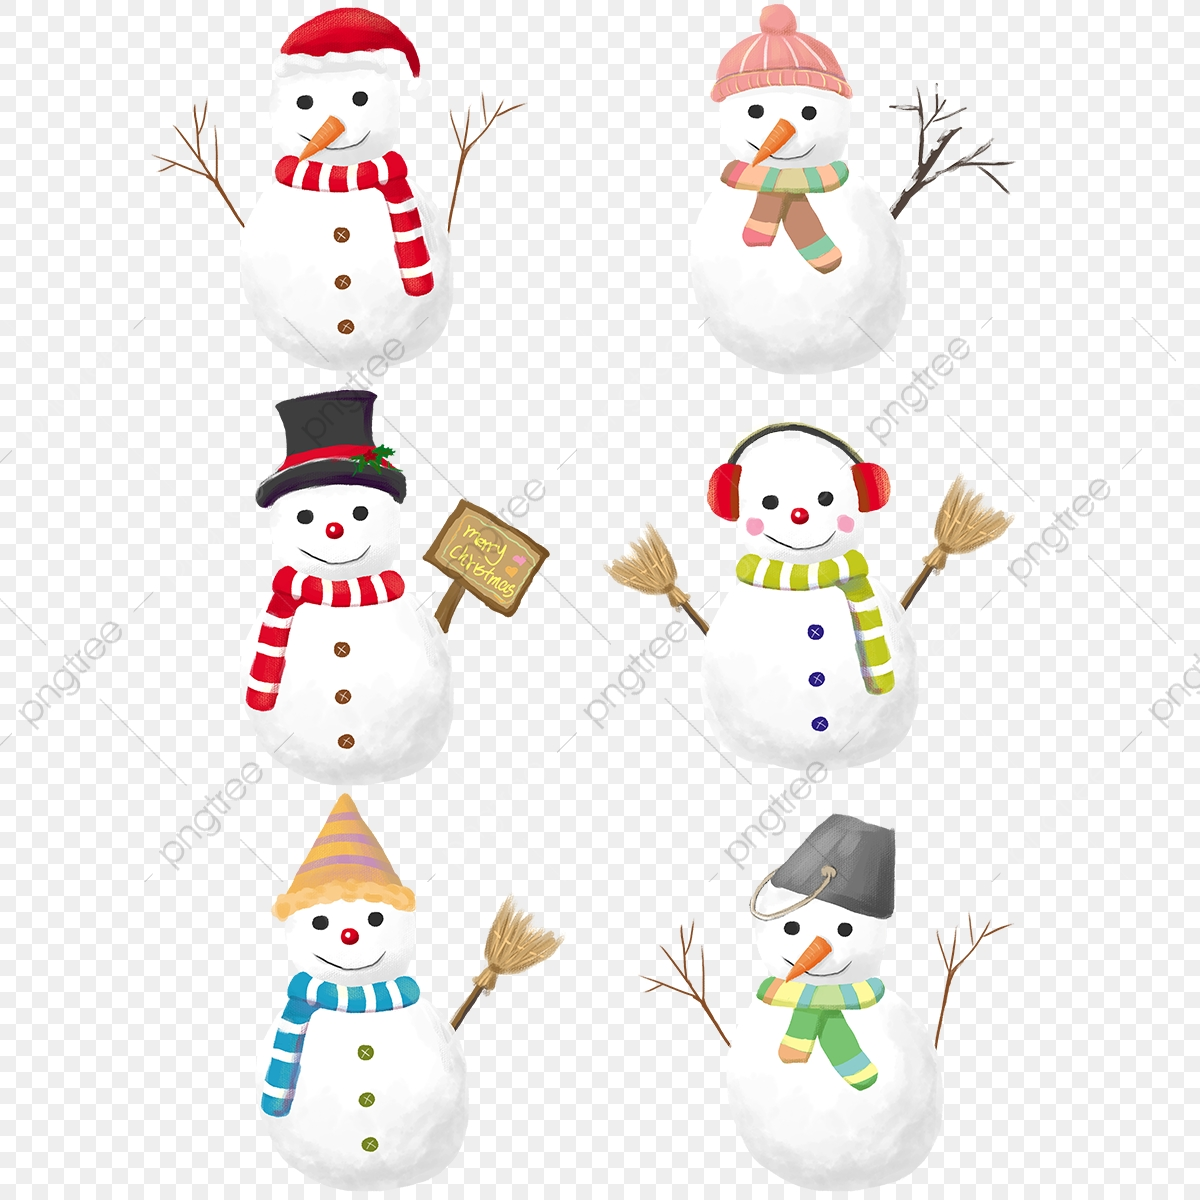 Cute Christmas Snowman Illustration, Cartoon, Cute, Christmas PNG.